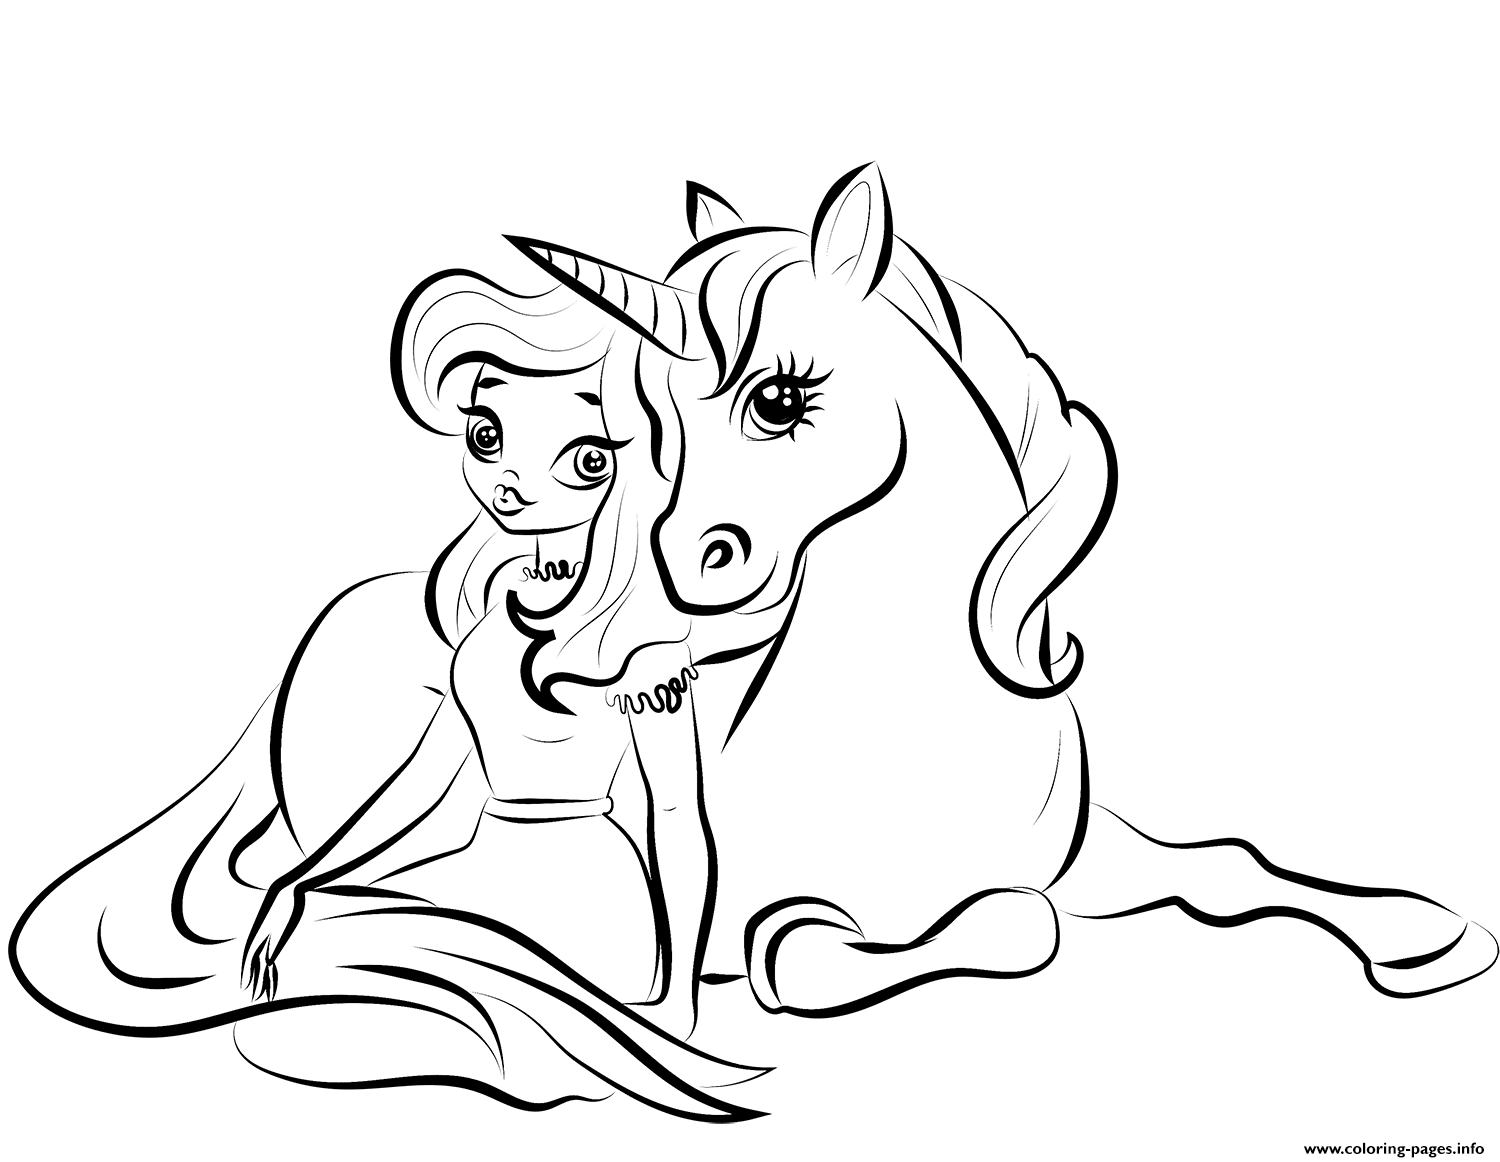 rainbow princess unicorn coloring pages unicorn coloring pages cool2bkids rainbow princess coloring unicorn pages